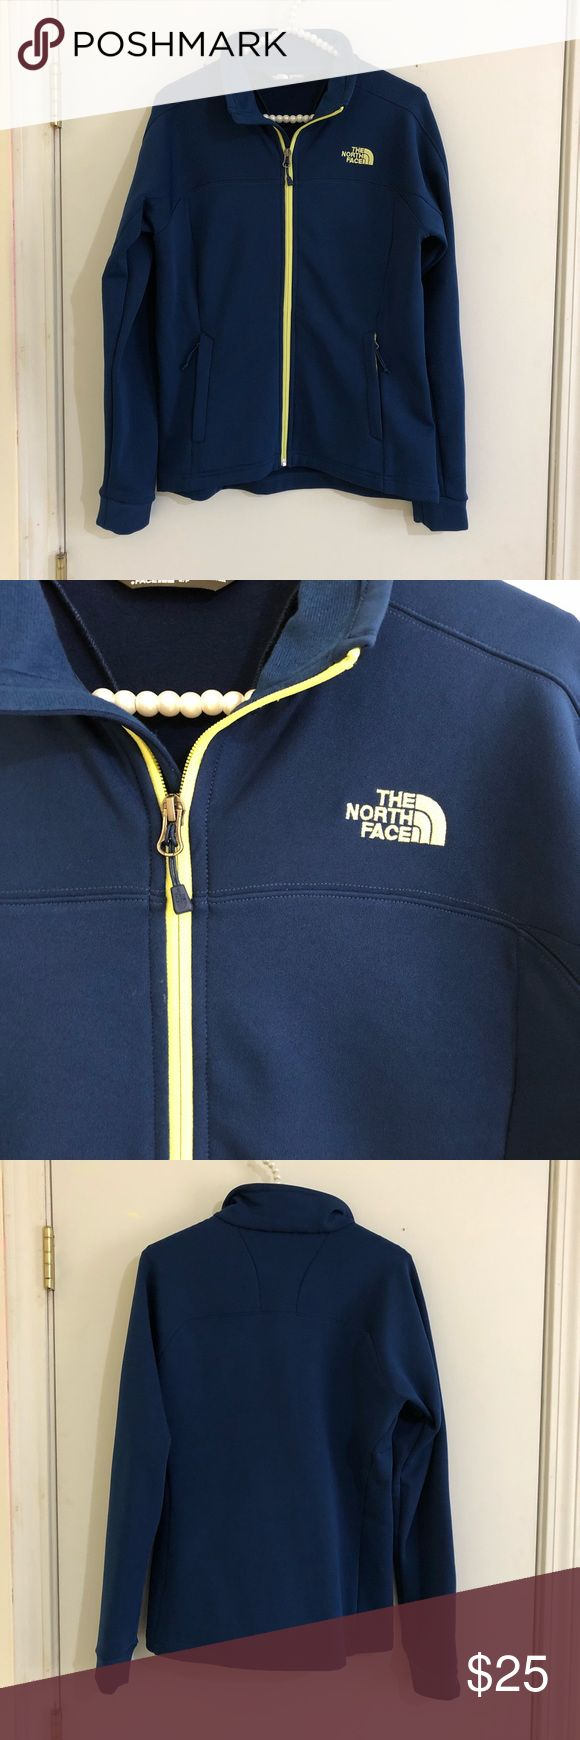 The North Face jacket Navy blue with bright chartreuse accents. Worn and washed only a few times. Still in like new condition! Was purchased at a North Face outlet store. Don't hesitate to ask any questions! The North Face Jackets & Coats Utility Jackets